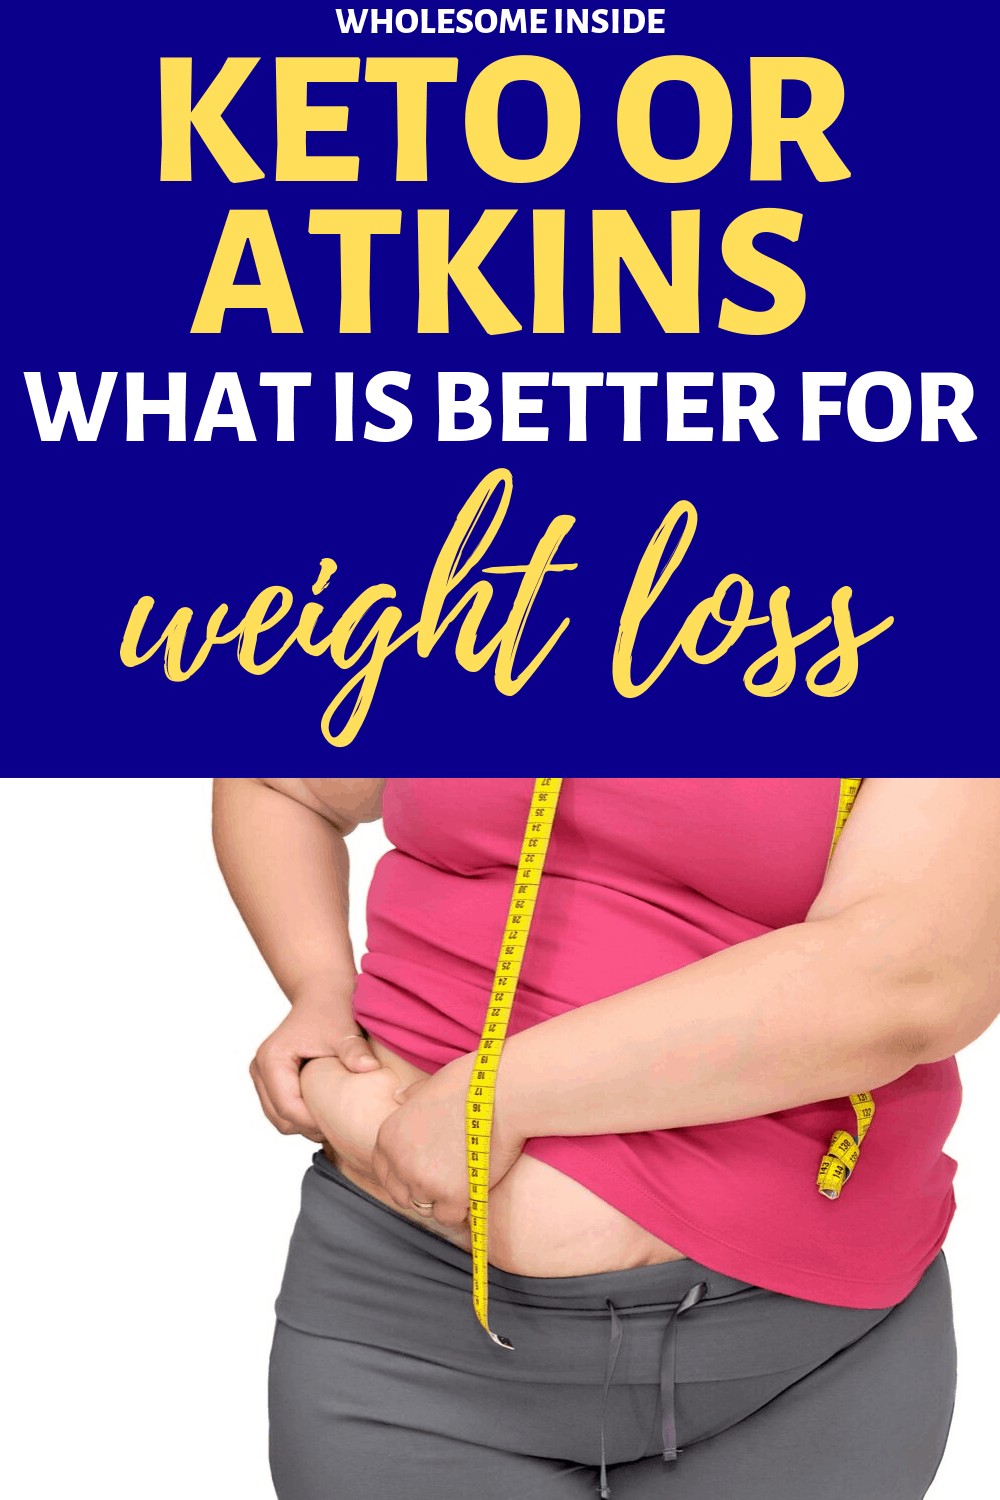 The difference between Keto and Atkins and which one is better for weight loss